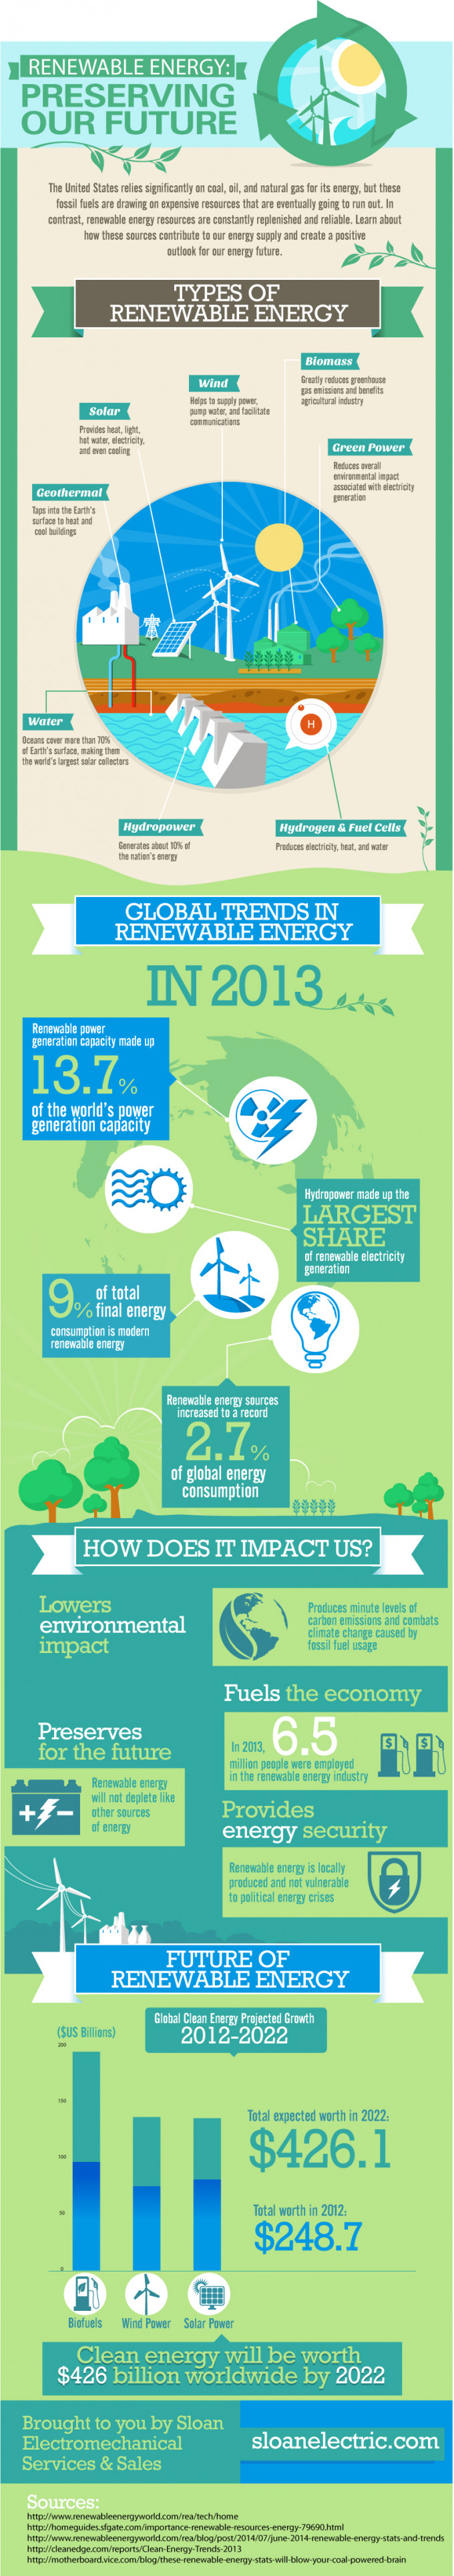 Renewable Energy: Preserving Our Future